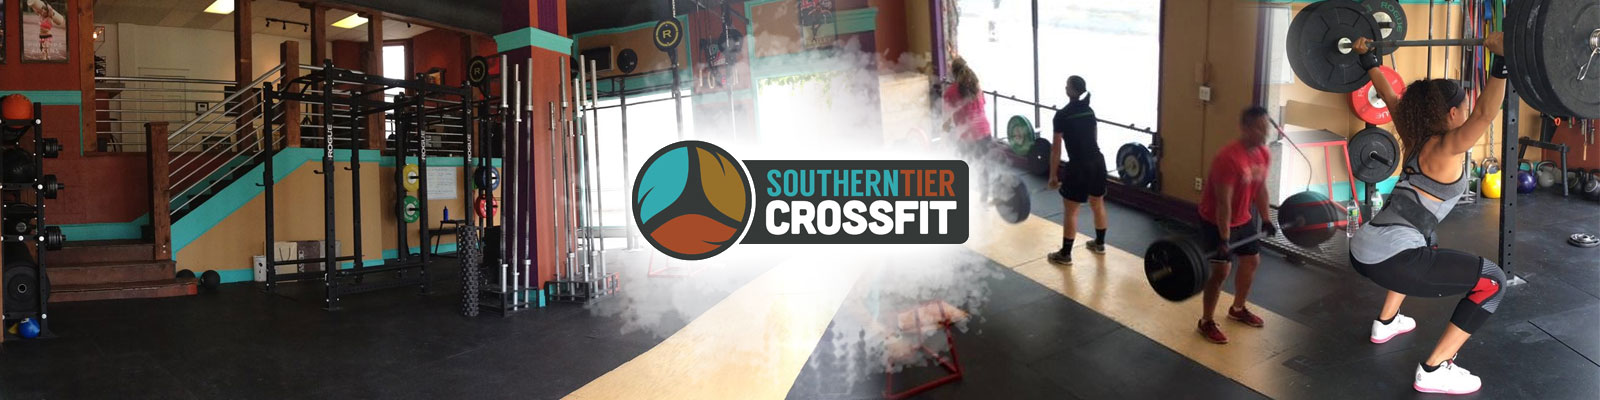 Southern Tier CrossFit BiziFit